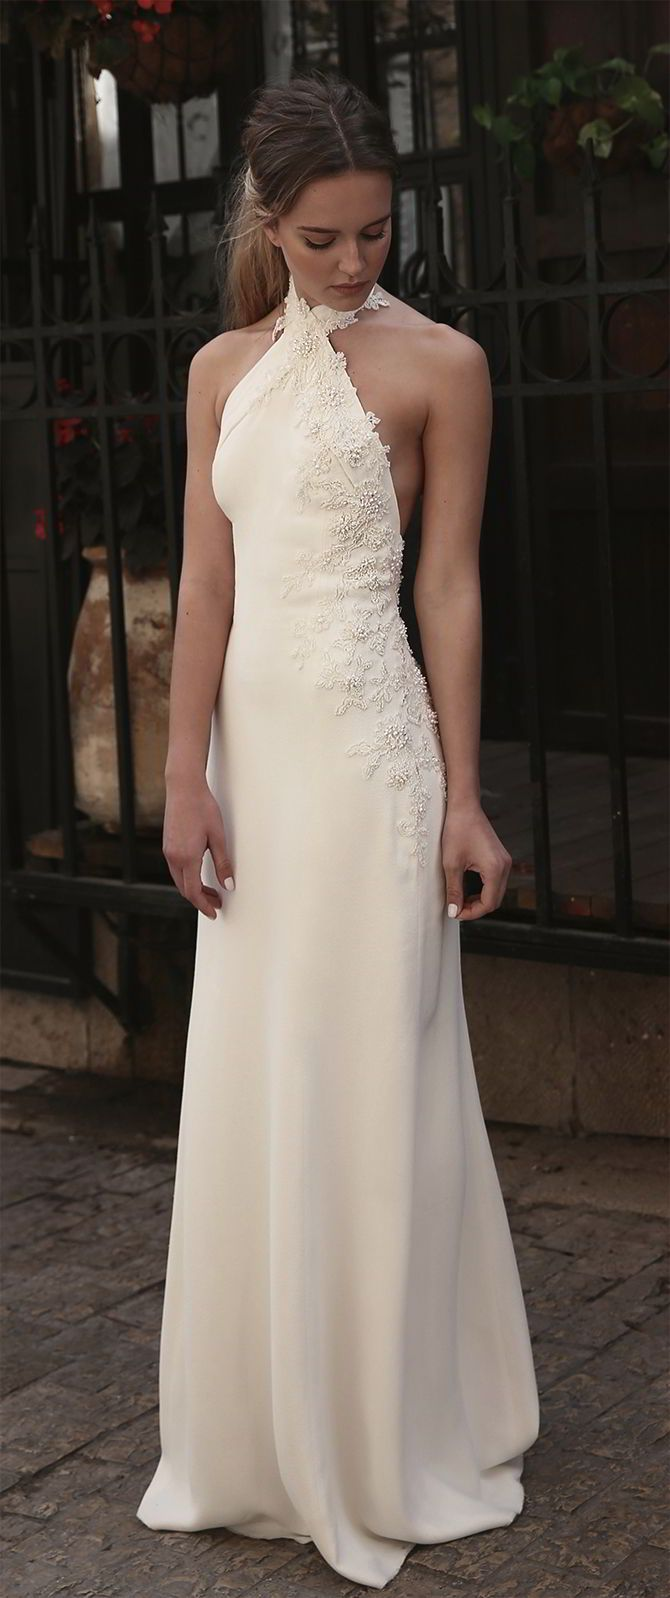 Rinat Shacham 2017 Wedding Dress delicate elegant halter style wedding gown